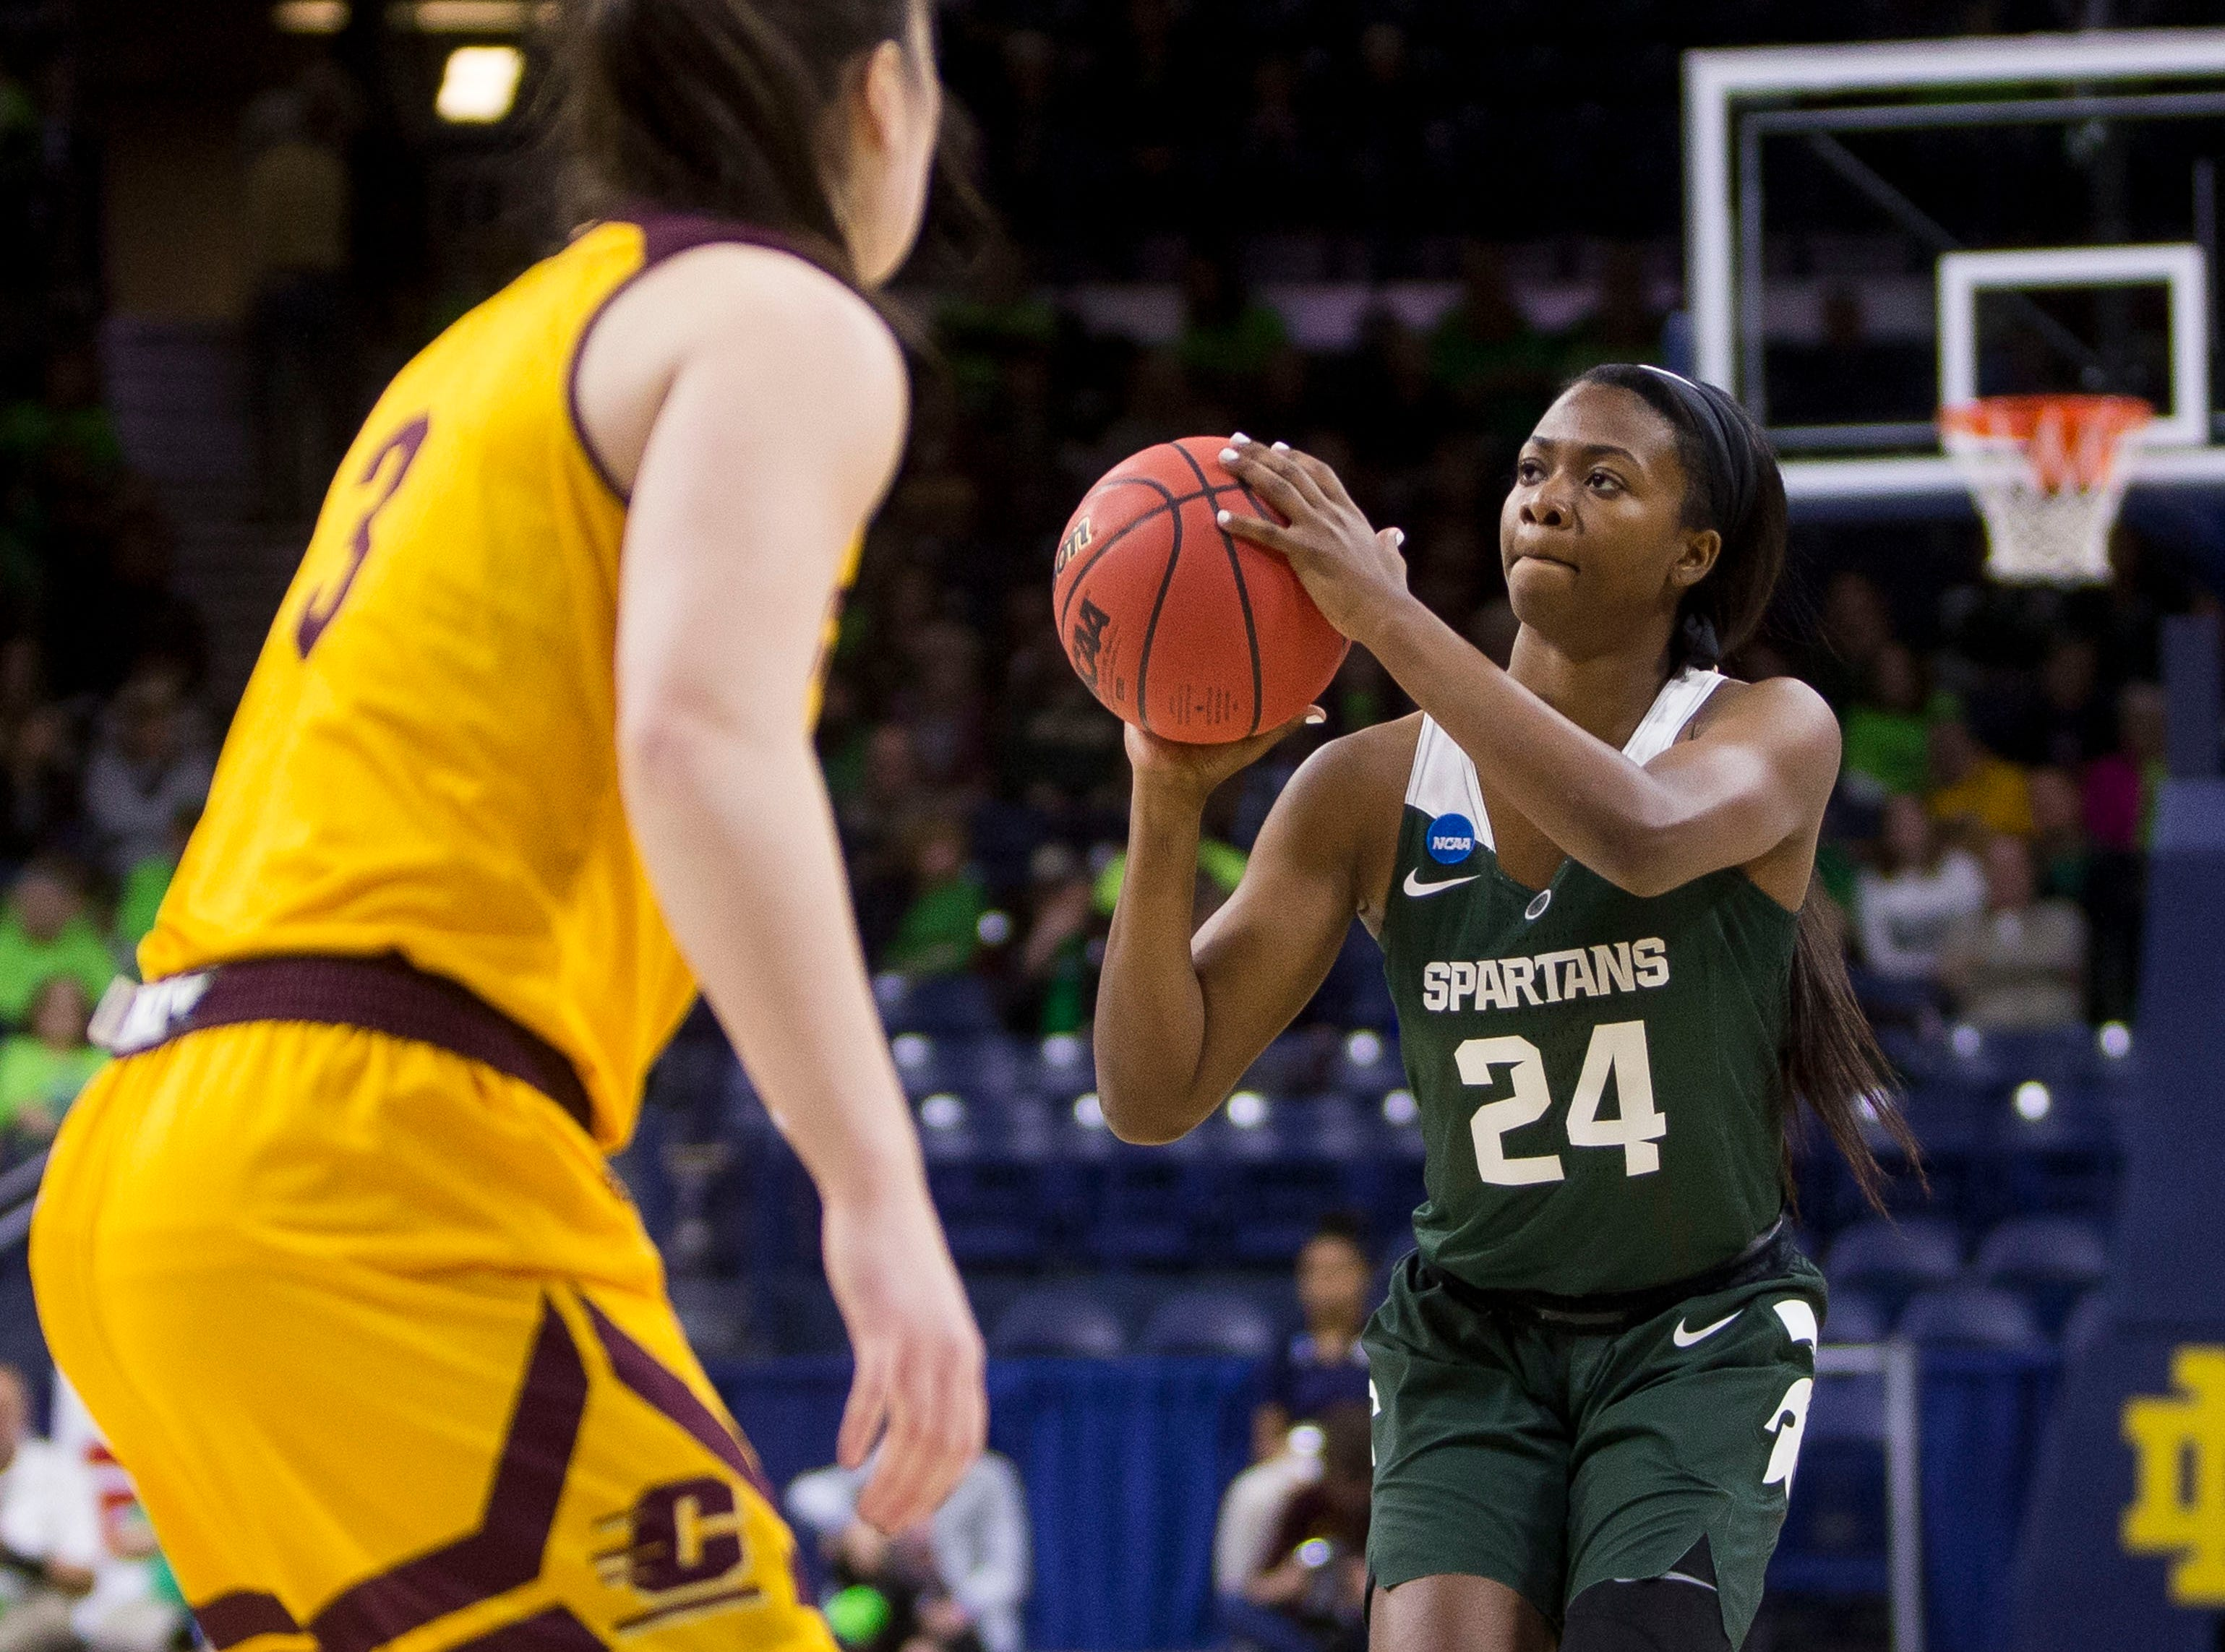 Michigan State's Nia Clouden (24) goes up for a 3-pointer in front of Central Michigan's Presley Hudson (3) during a first-round game in the NCAA women's college basketball tournament in South Bend, Ind., Saturday, March 23, 2019. (AP Photo/Robert Franklin)